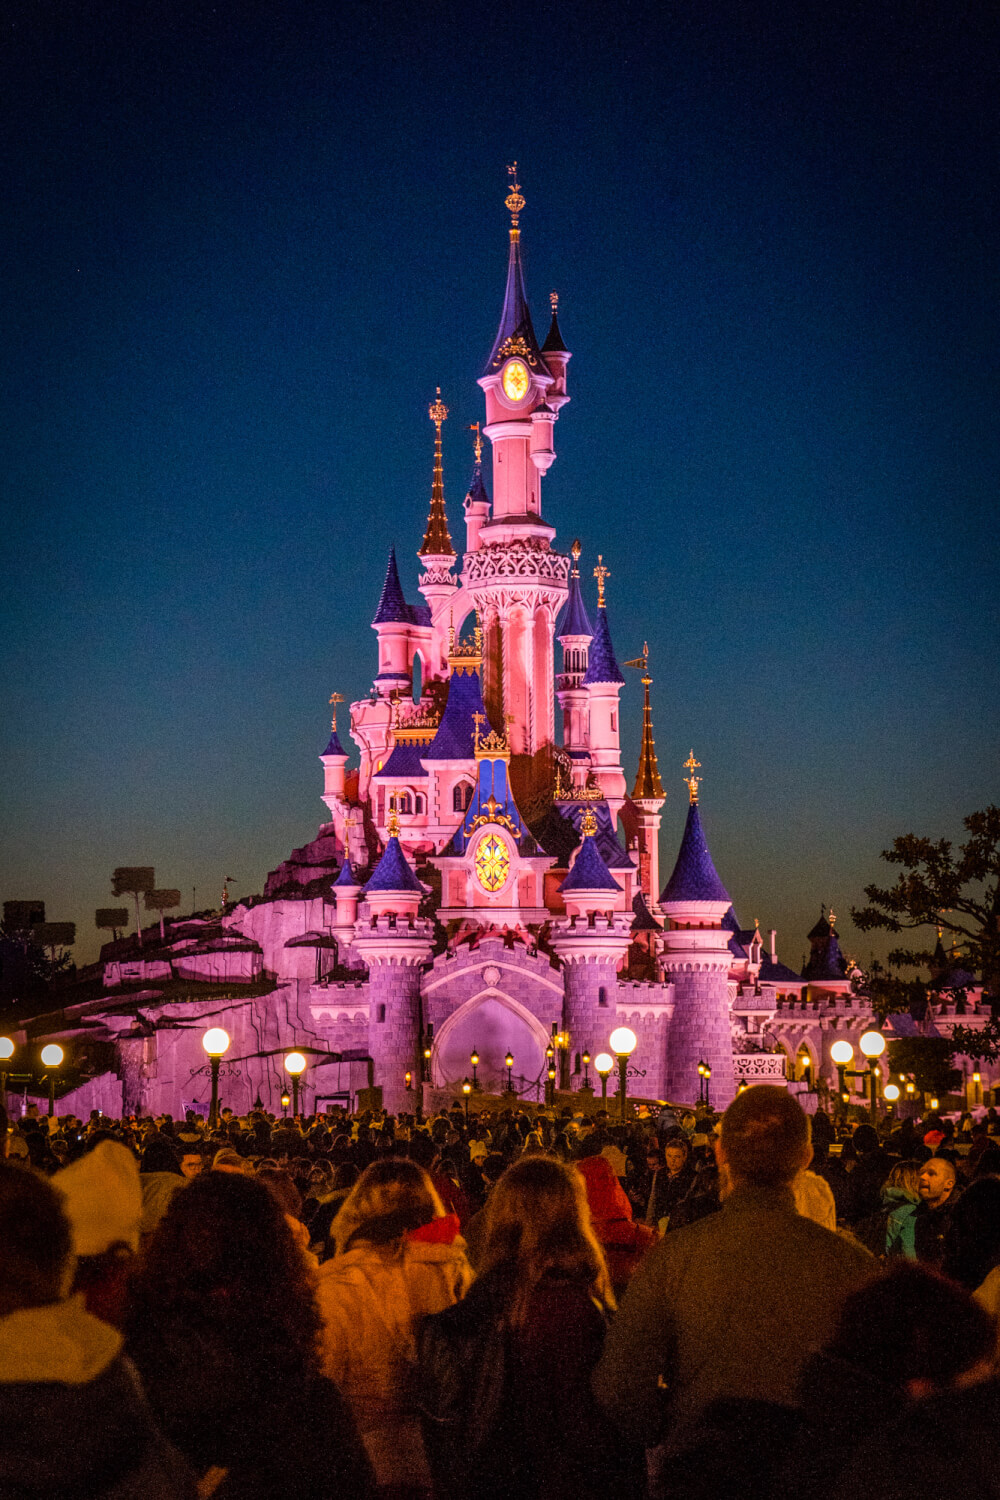 Sunset over the Disneyland Paris castle at Disneyland Park in Marne la Vallee, France